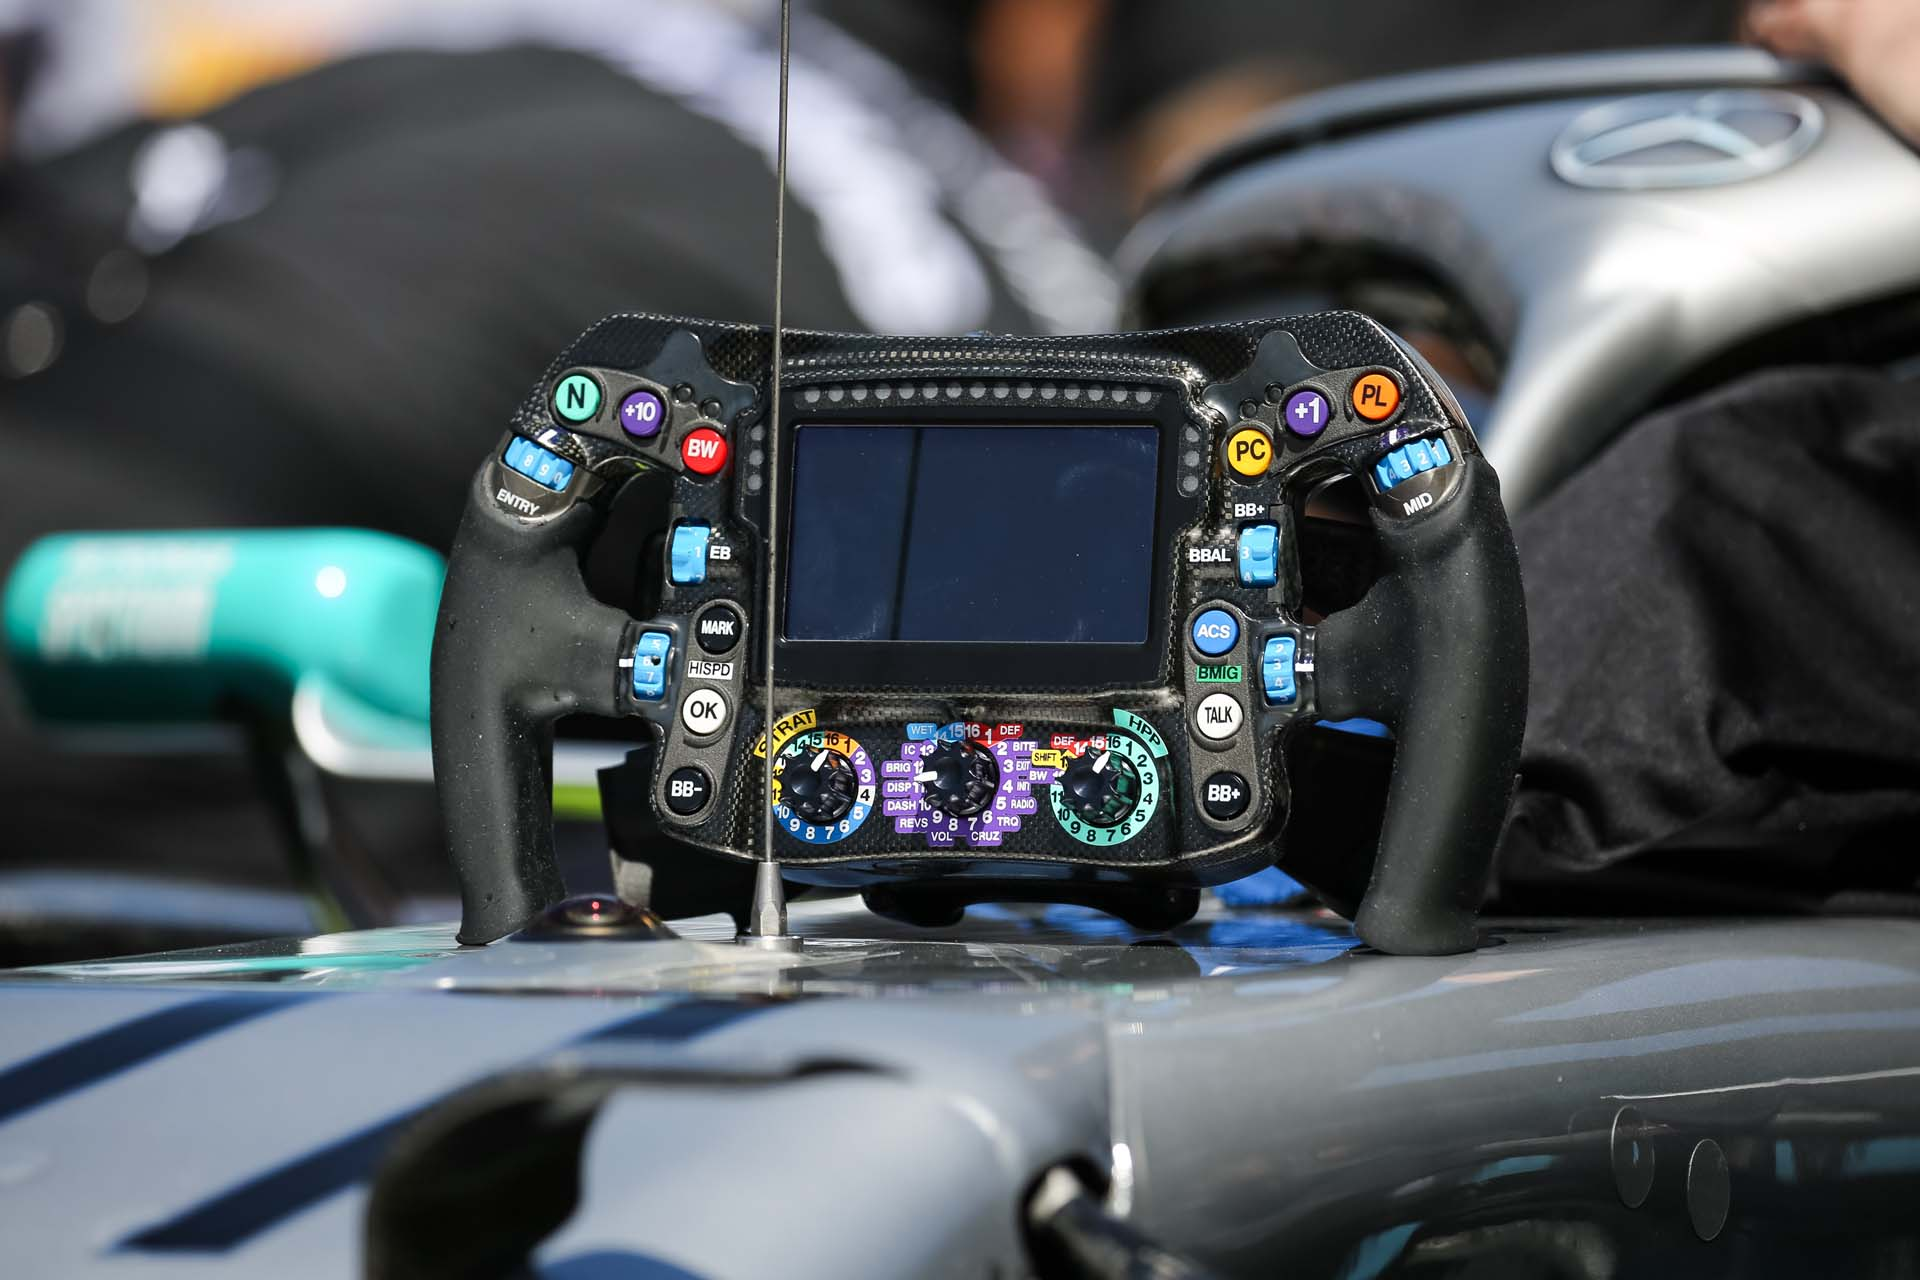 SPIELBERG,AUSTRIA,30.JUN.19 - MOTORSPORTS, FORMULA 1 - Grand Prix of Austria, Red Bull Ring. Image shows a steering wheel. Photo: GEPA pictures/ Daniel Goetzhaber - For editorial use only. Image is free of charge.